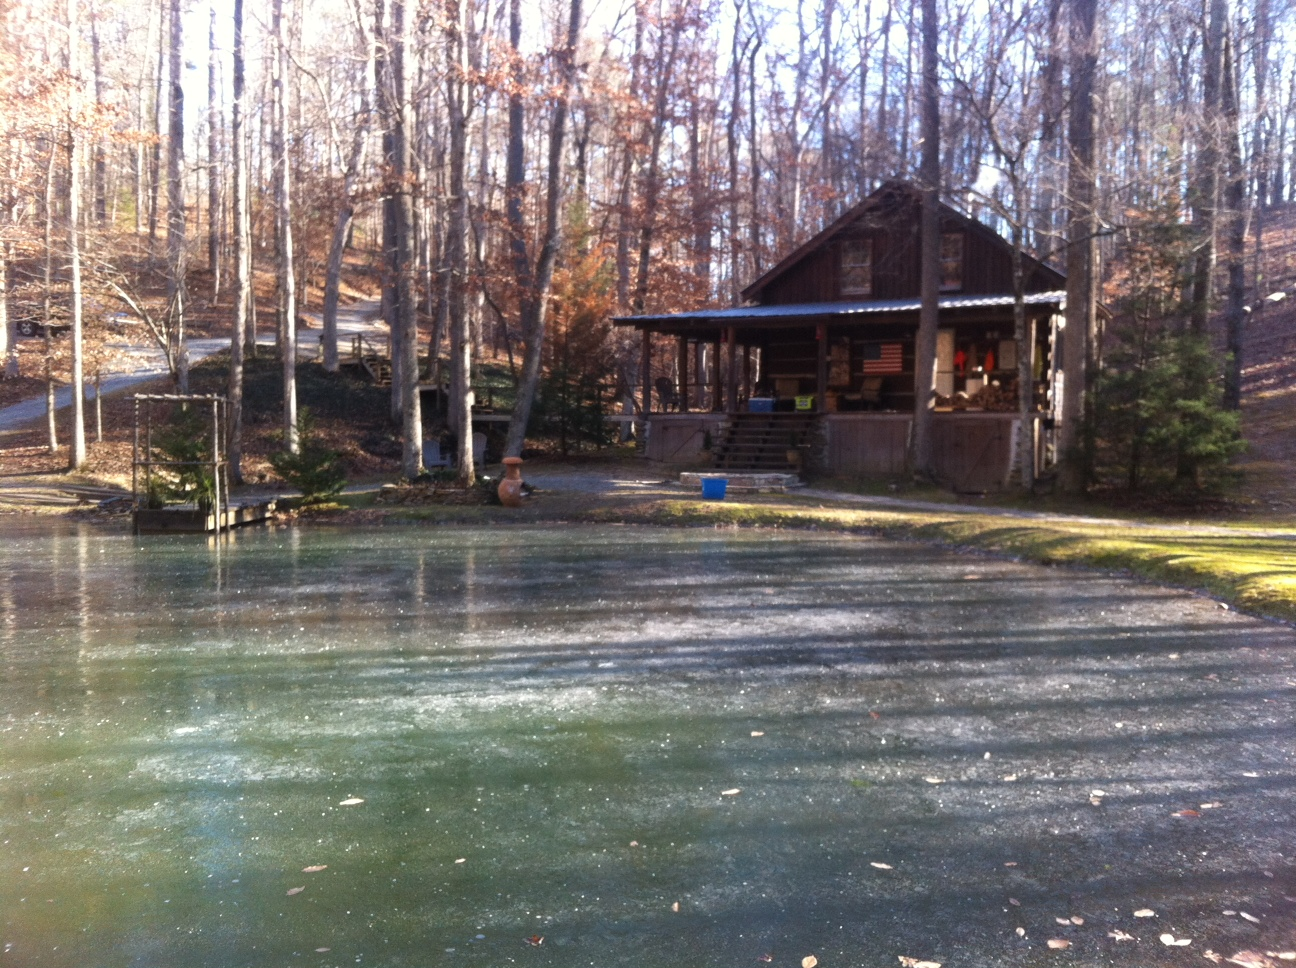 With water flowing in and out of our pond (technically a lake), we weren't sure it would freeze over.